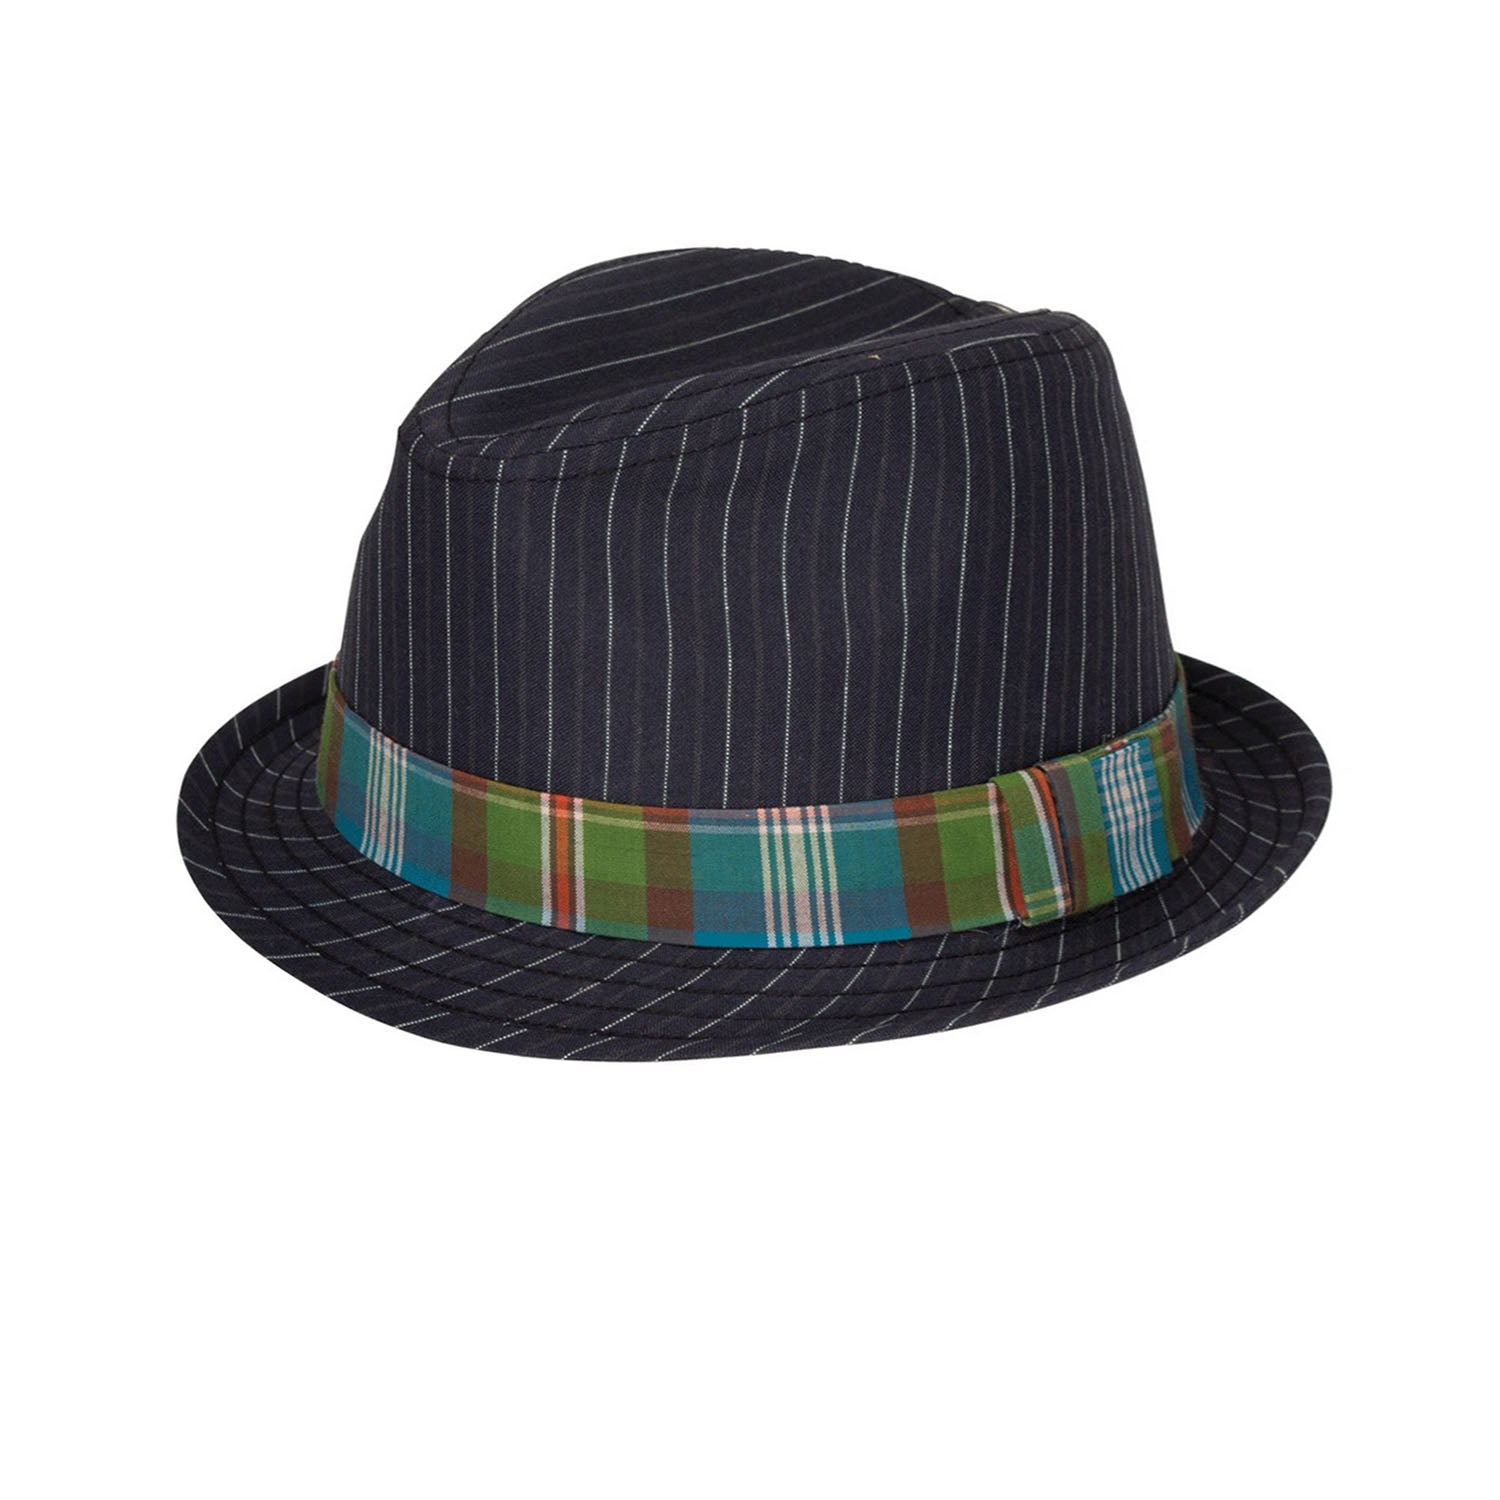 Goorin Bros Ronnie Harris Fedora Hat